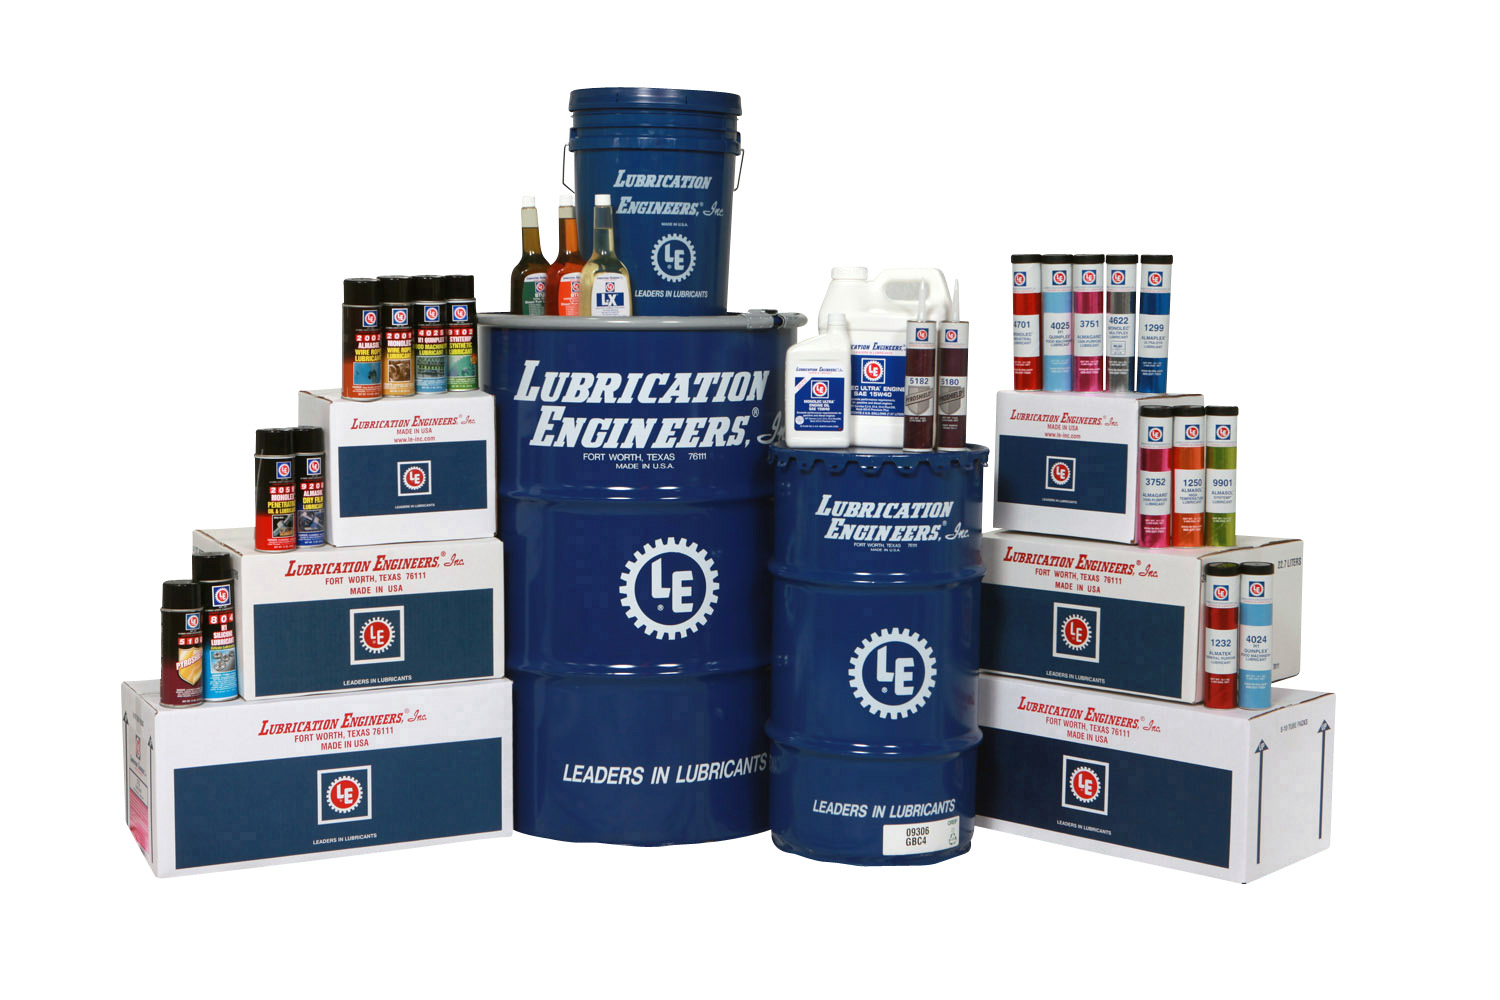 Lubrication Engineers lubricants products oil grease